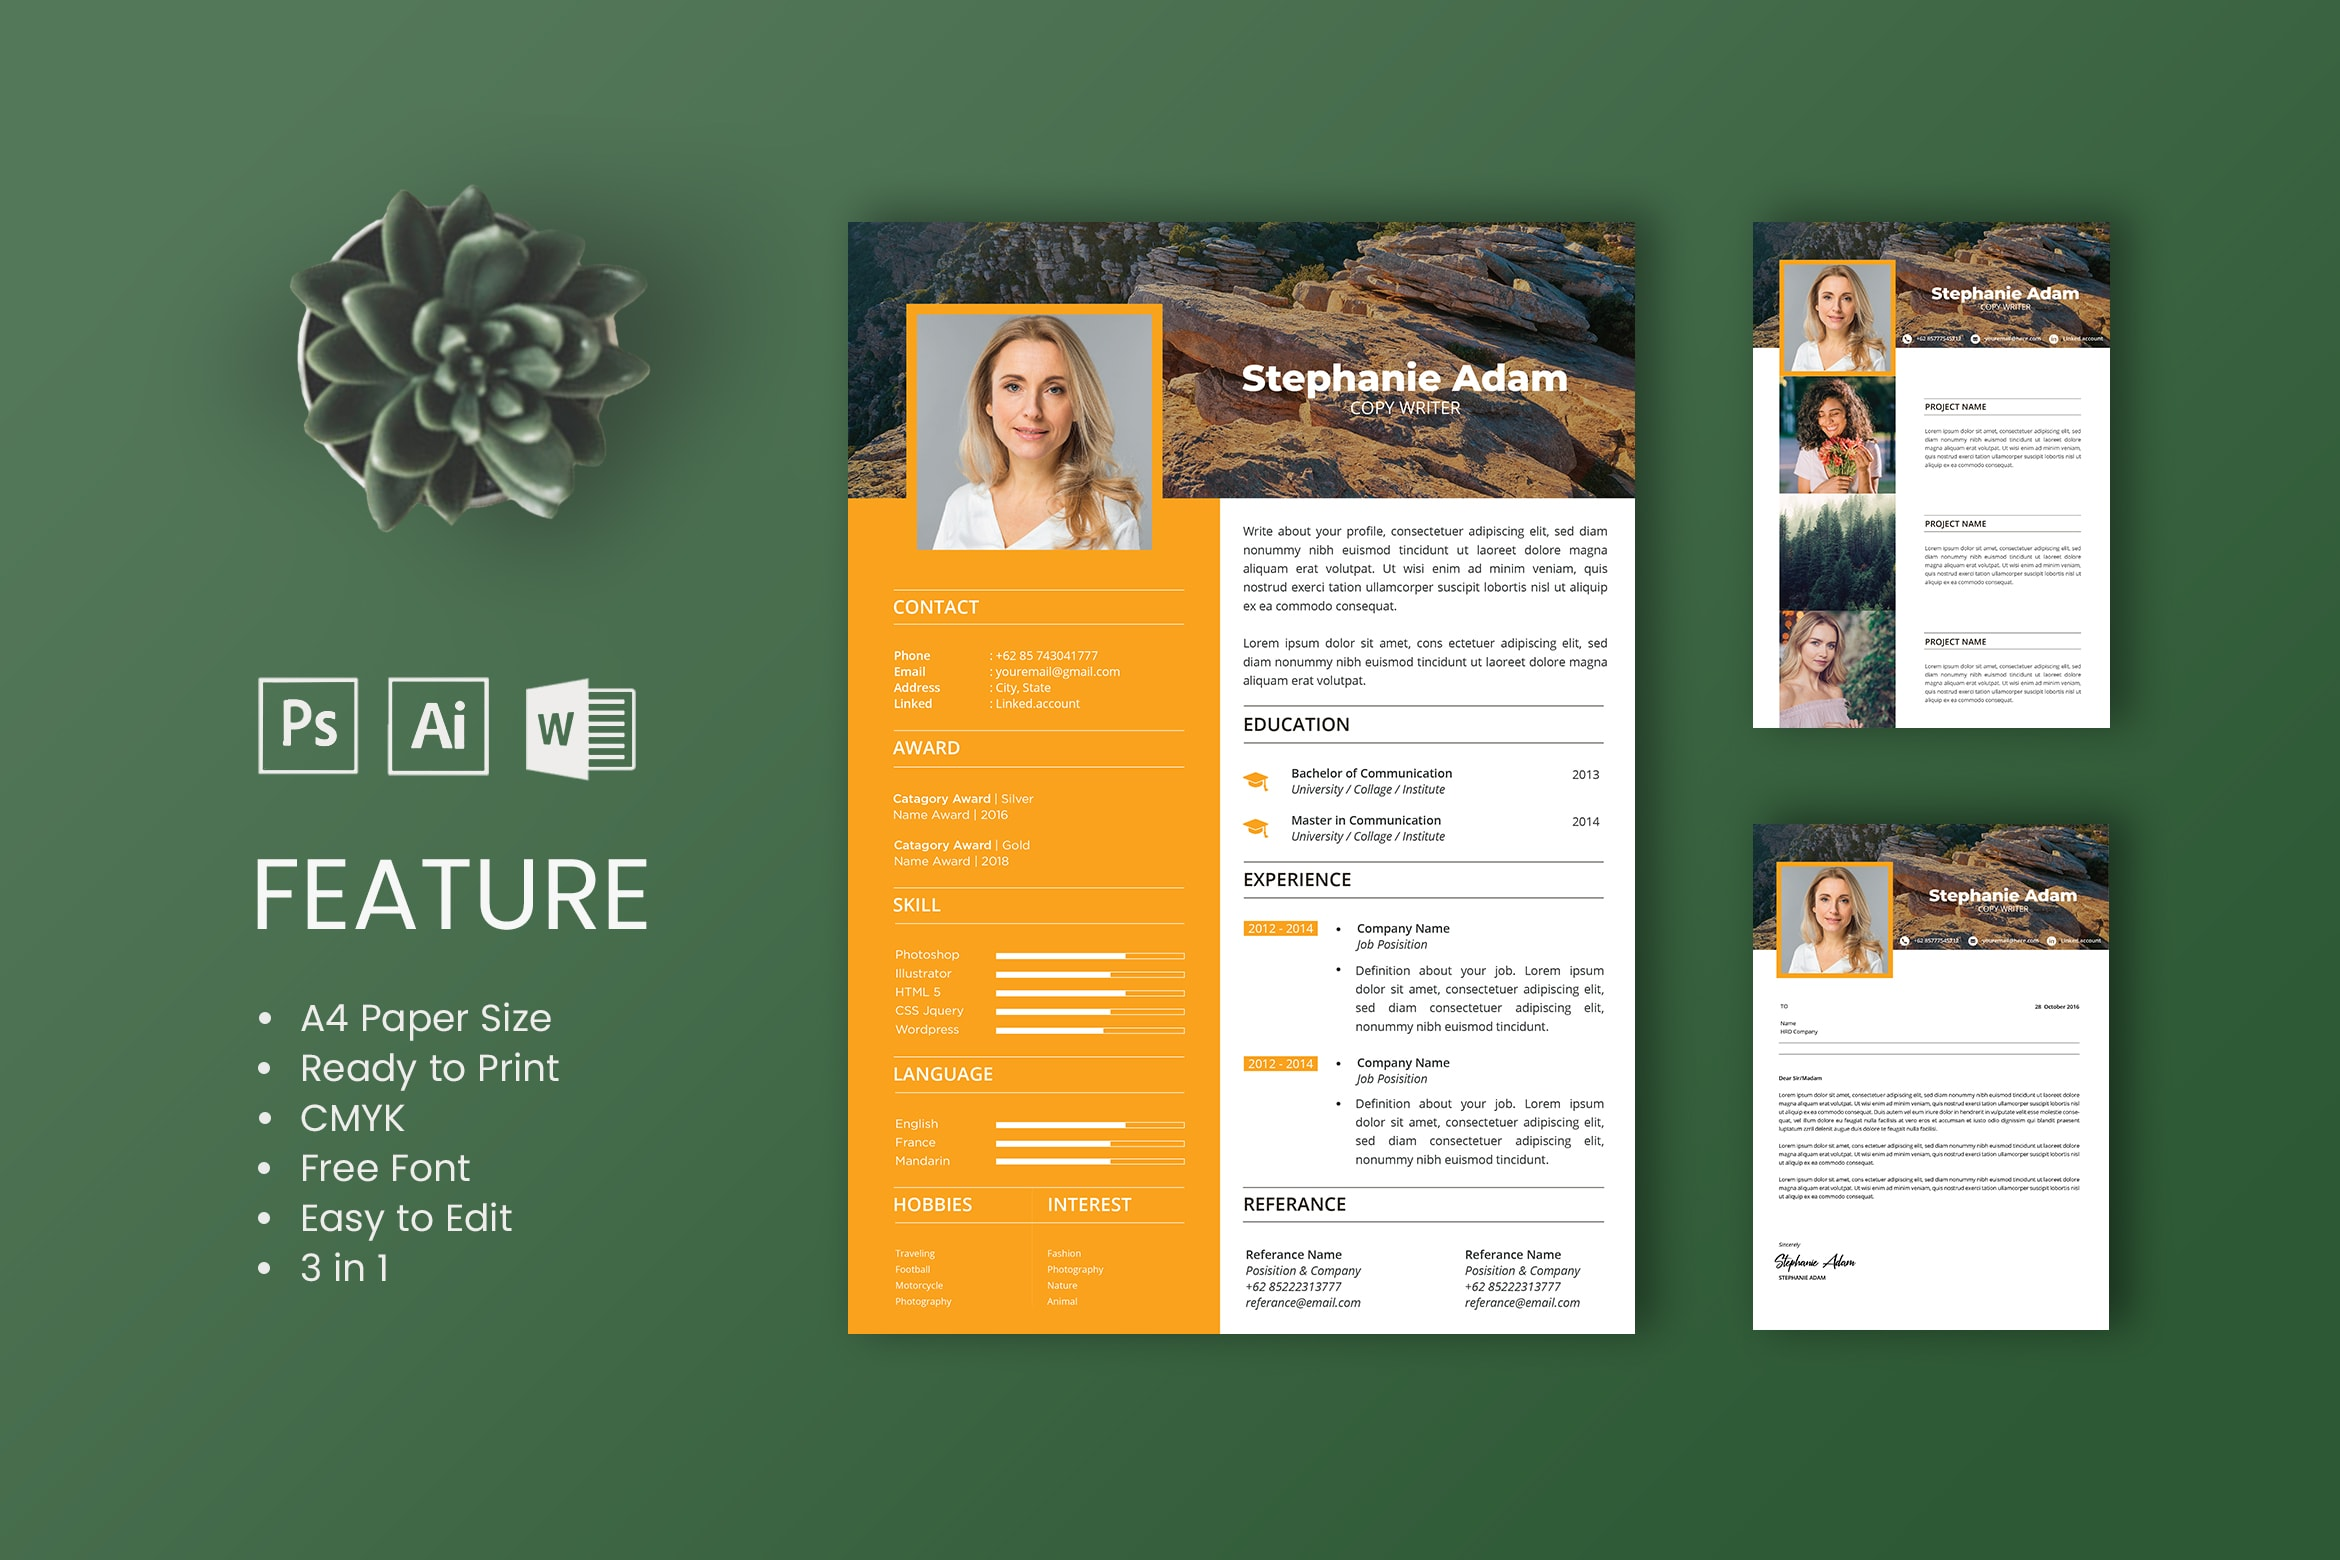 CV Resume – Copywriter Profile 4